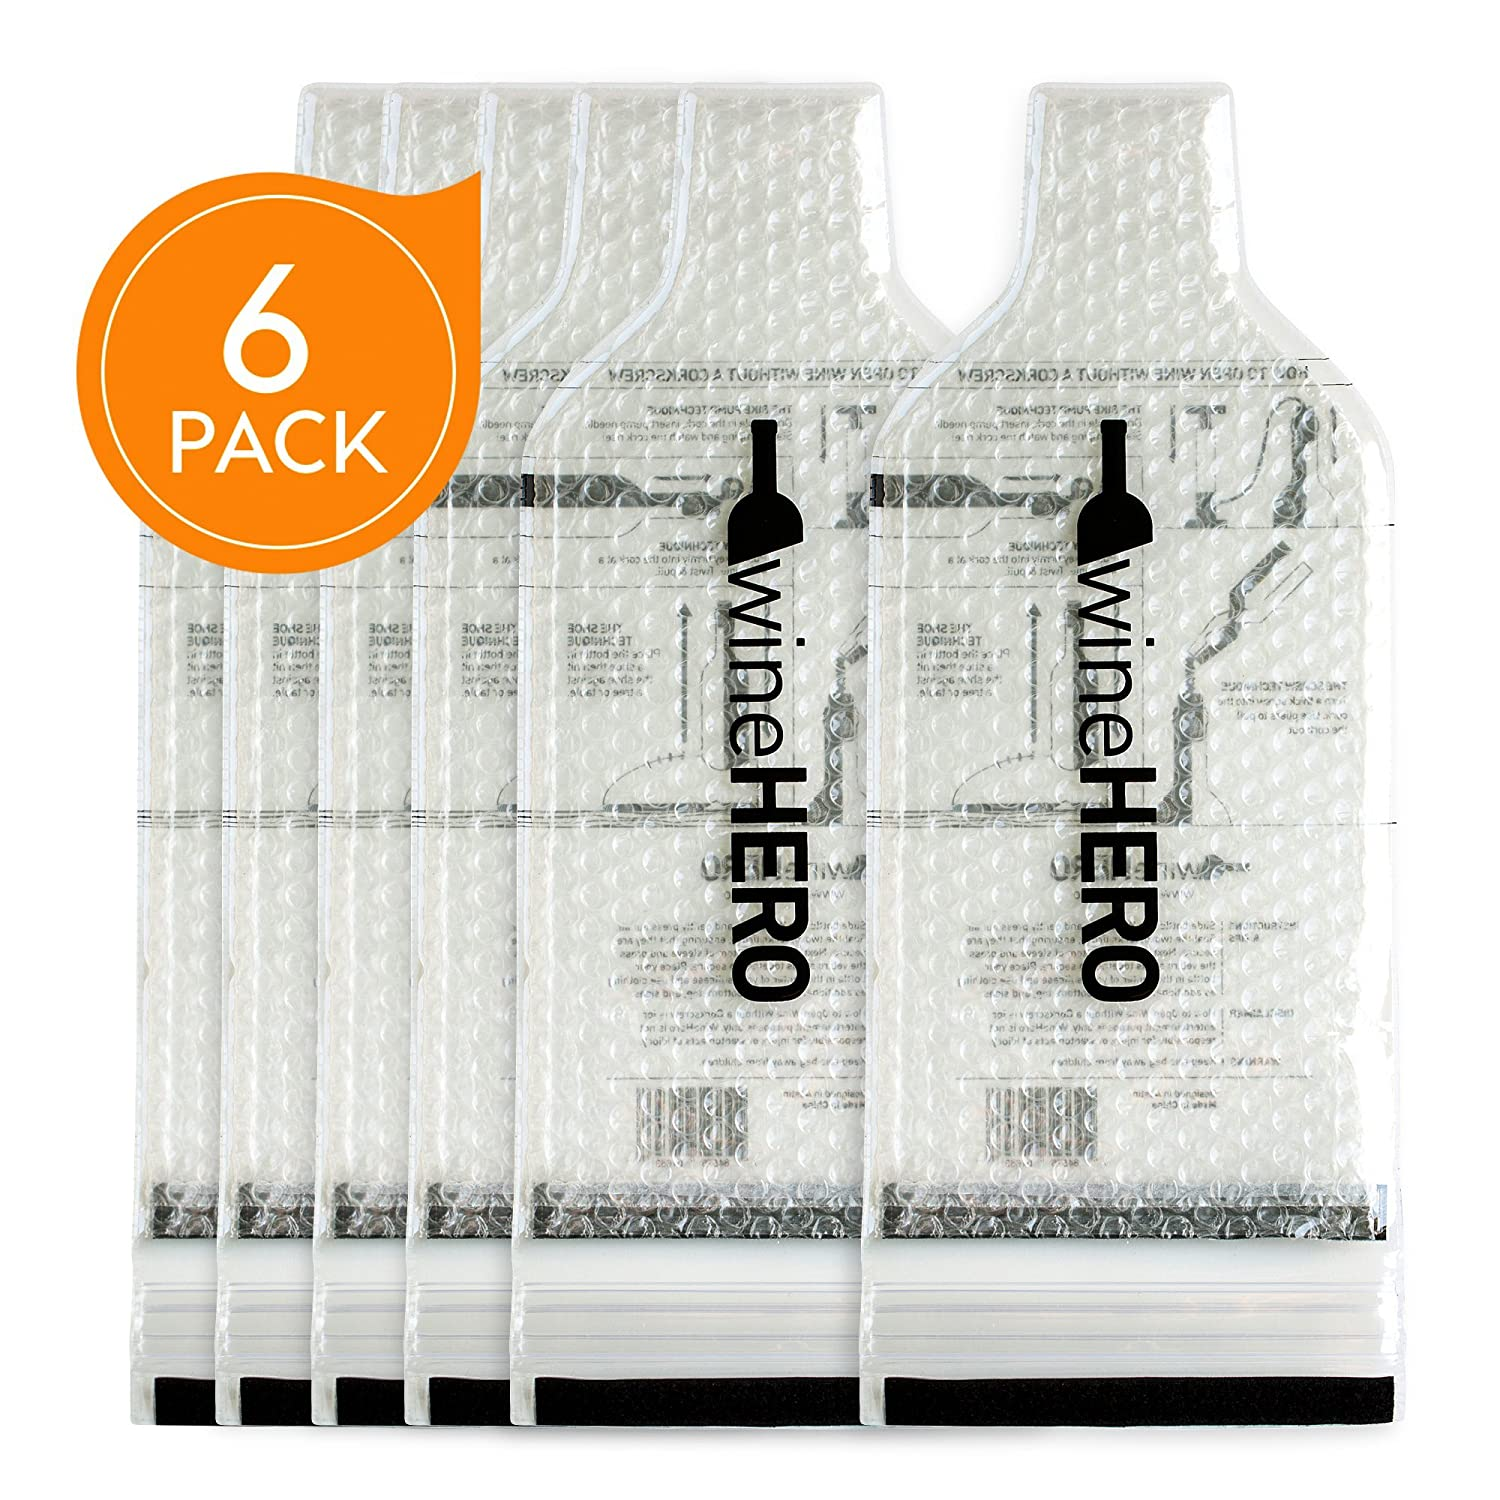 WineHero - 6 Pack Reusable Leak Proof Bottle Protector Bag for Travel Pack in Airplane Checked Baggage, Luggage, or Suitcase - Good for Cruise Travel - Wine Travel Accessory WineHead Wine India Nebraska Echo - 1